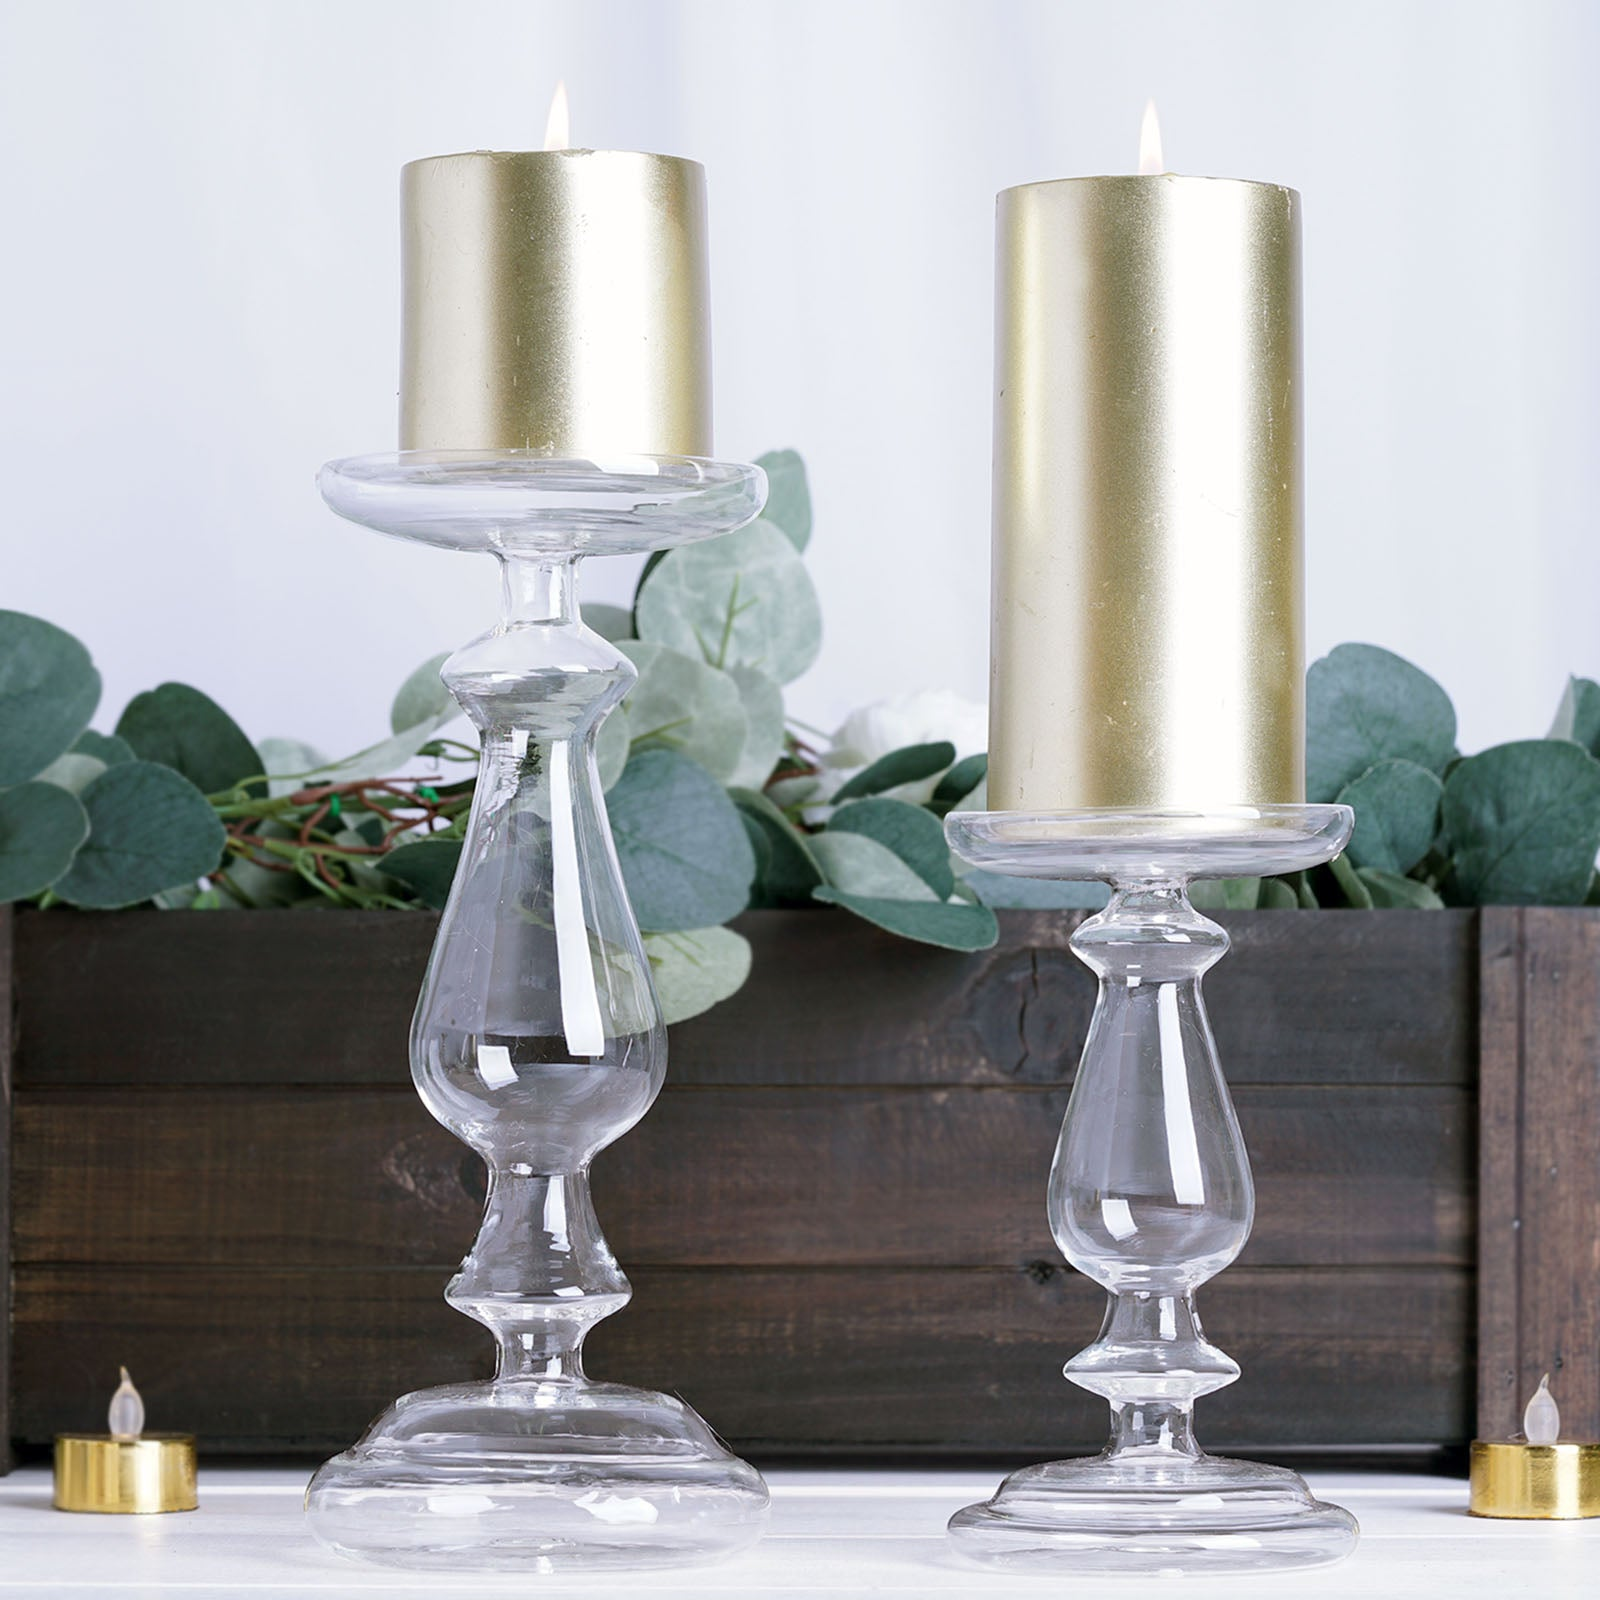 Mercury Glass Candle Holders Pillar Candle Holders Candlestick Tableclothsfactory